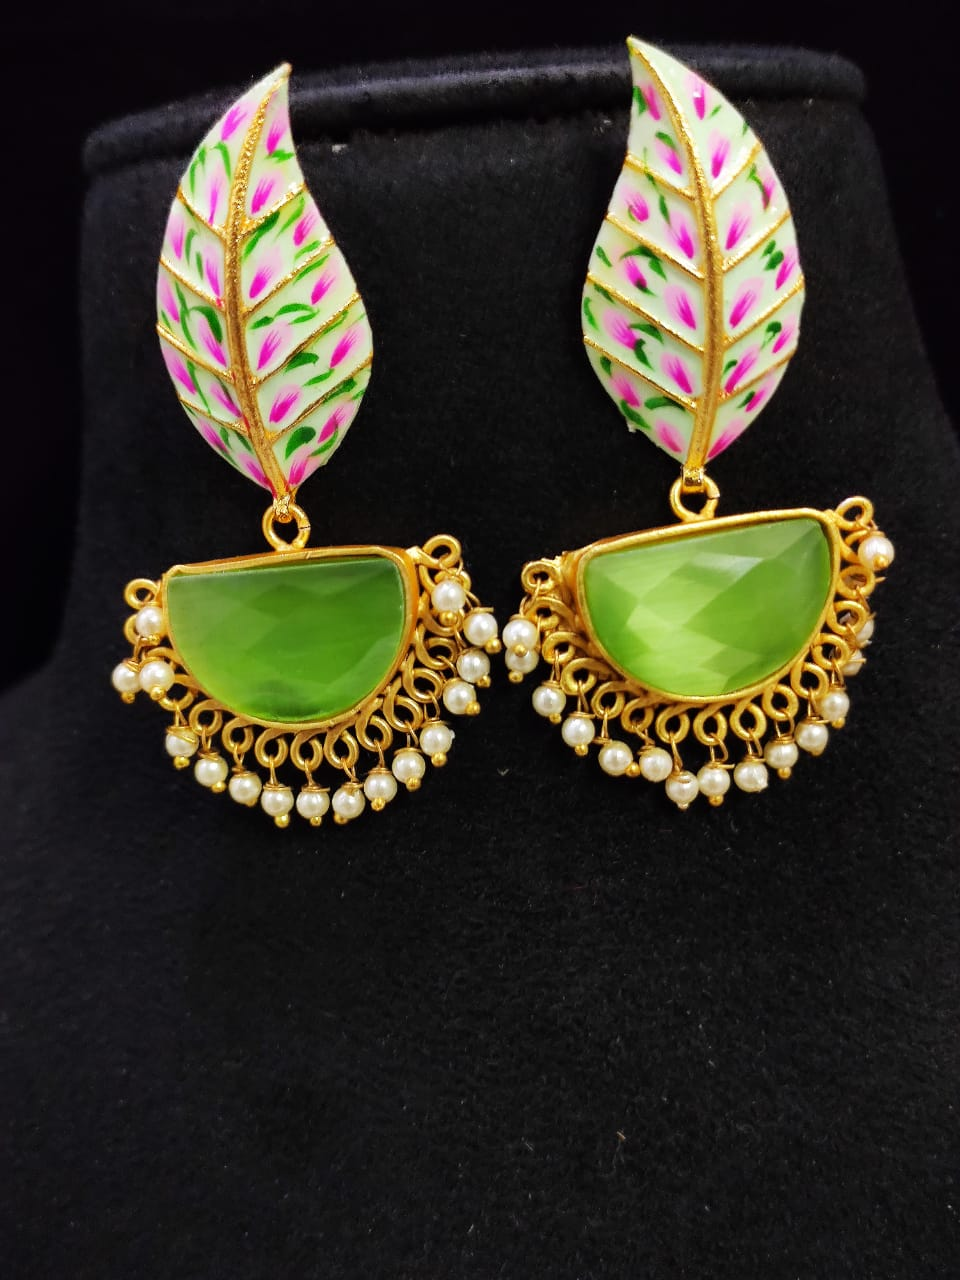 Attractive Matt Golden Hand Painted Stone Leaf Earrings